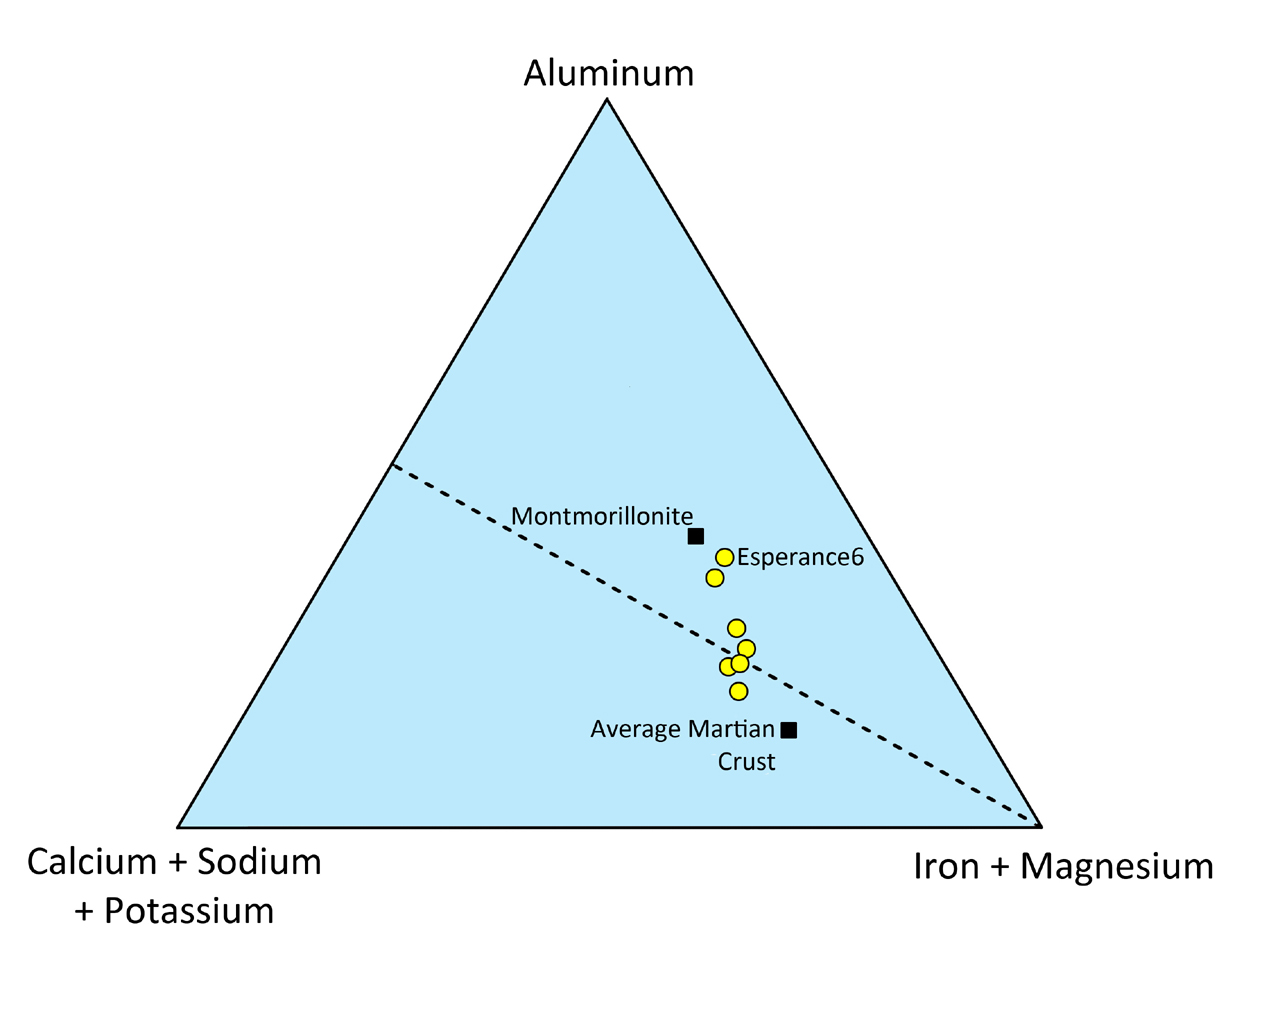 "This triangle plot shows the relative concentrations of some of the major chemical elements in the Martian rock ""Esperance."" The compositions of average Martian crust and of montmorillonite, a common clay mineral, are shown."